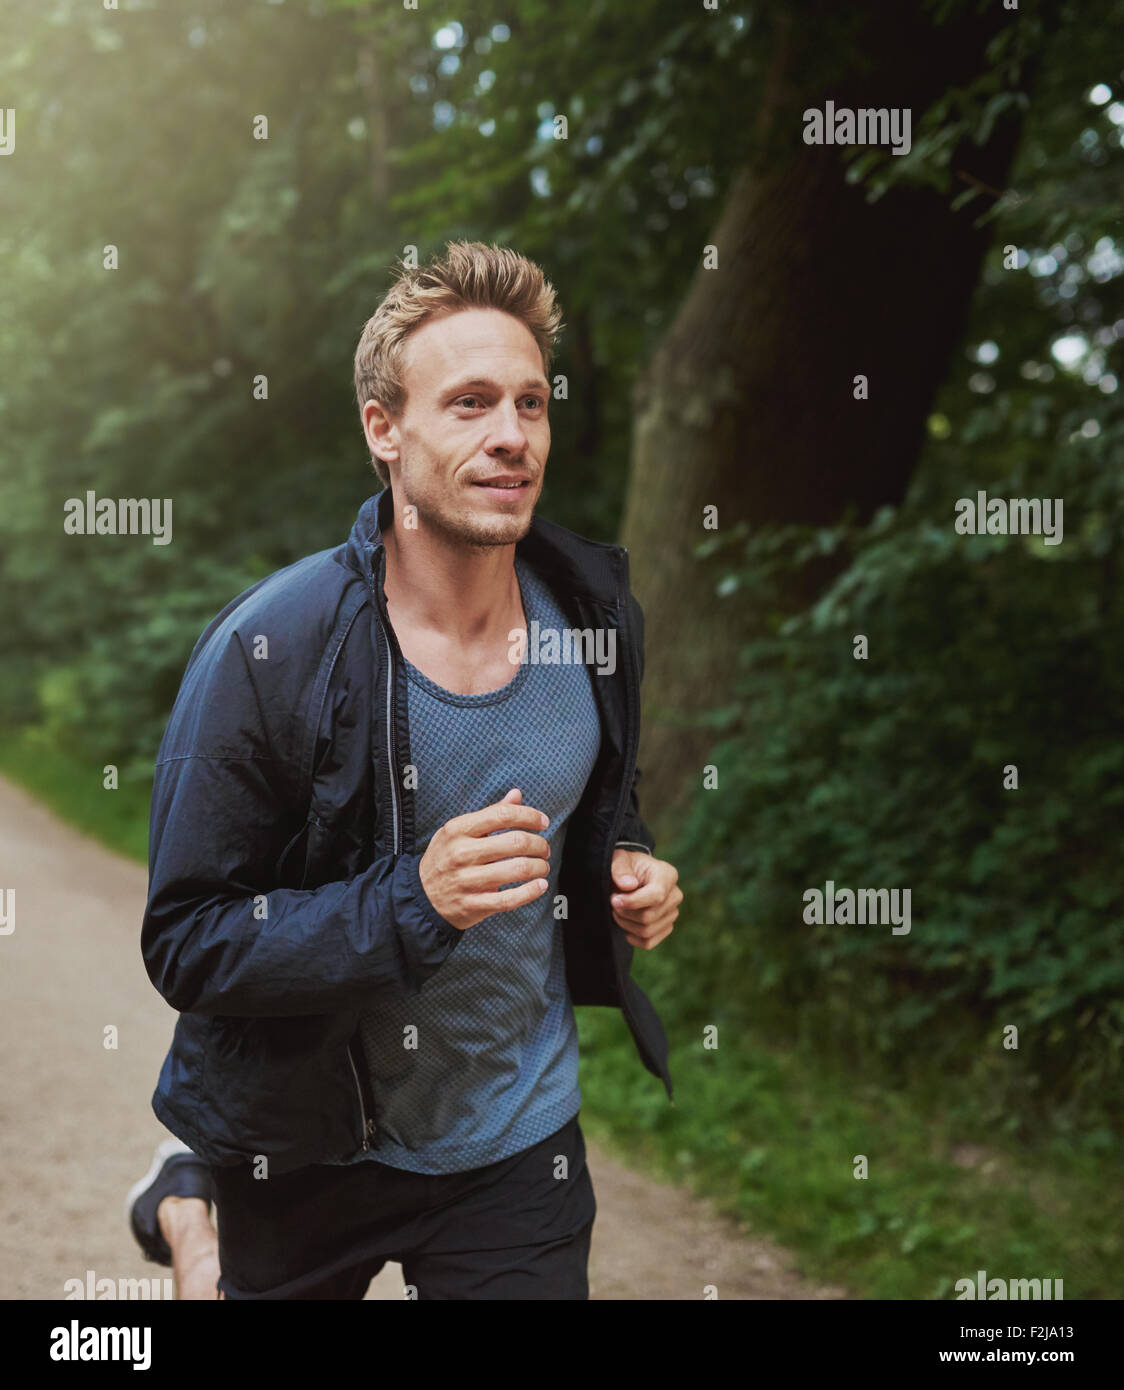 Three Quarter Shot of a Physical Fit Man Running at the Park Early in the Morning with Happy Facial Expression. - Stock Image